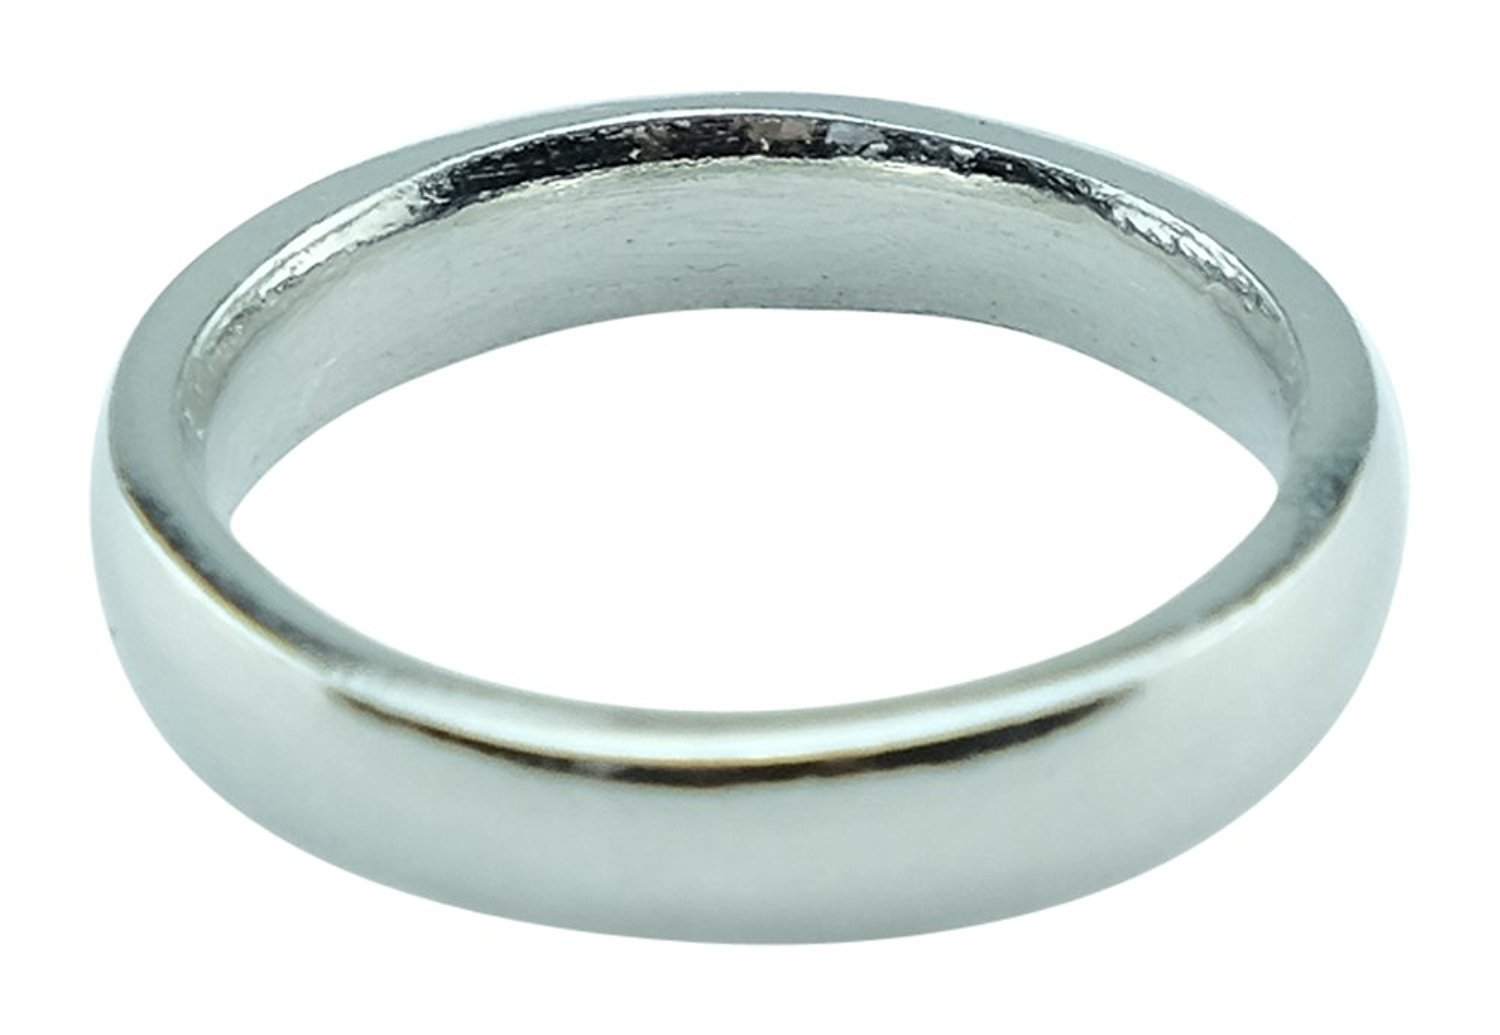 Womens Polished 10th Anniversary Ring Band - 100% Tin Content Gift Idea for 10 Years - Matching Him Band Available (8)